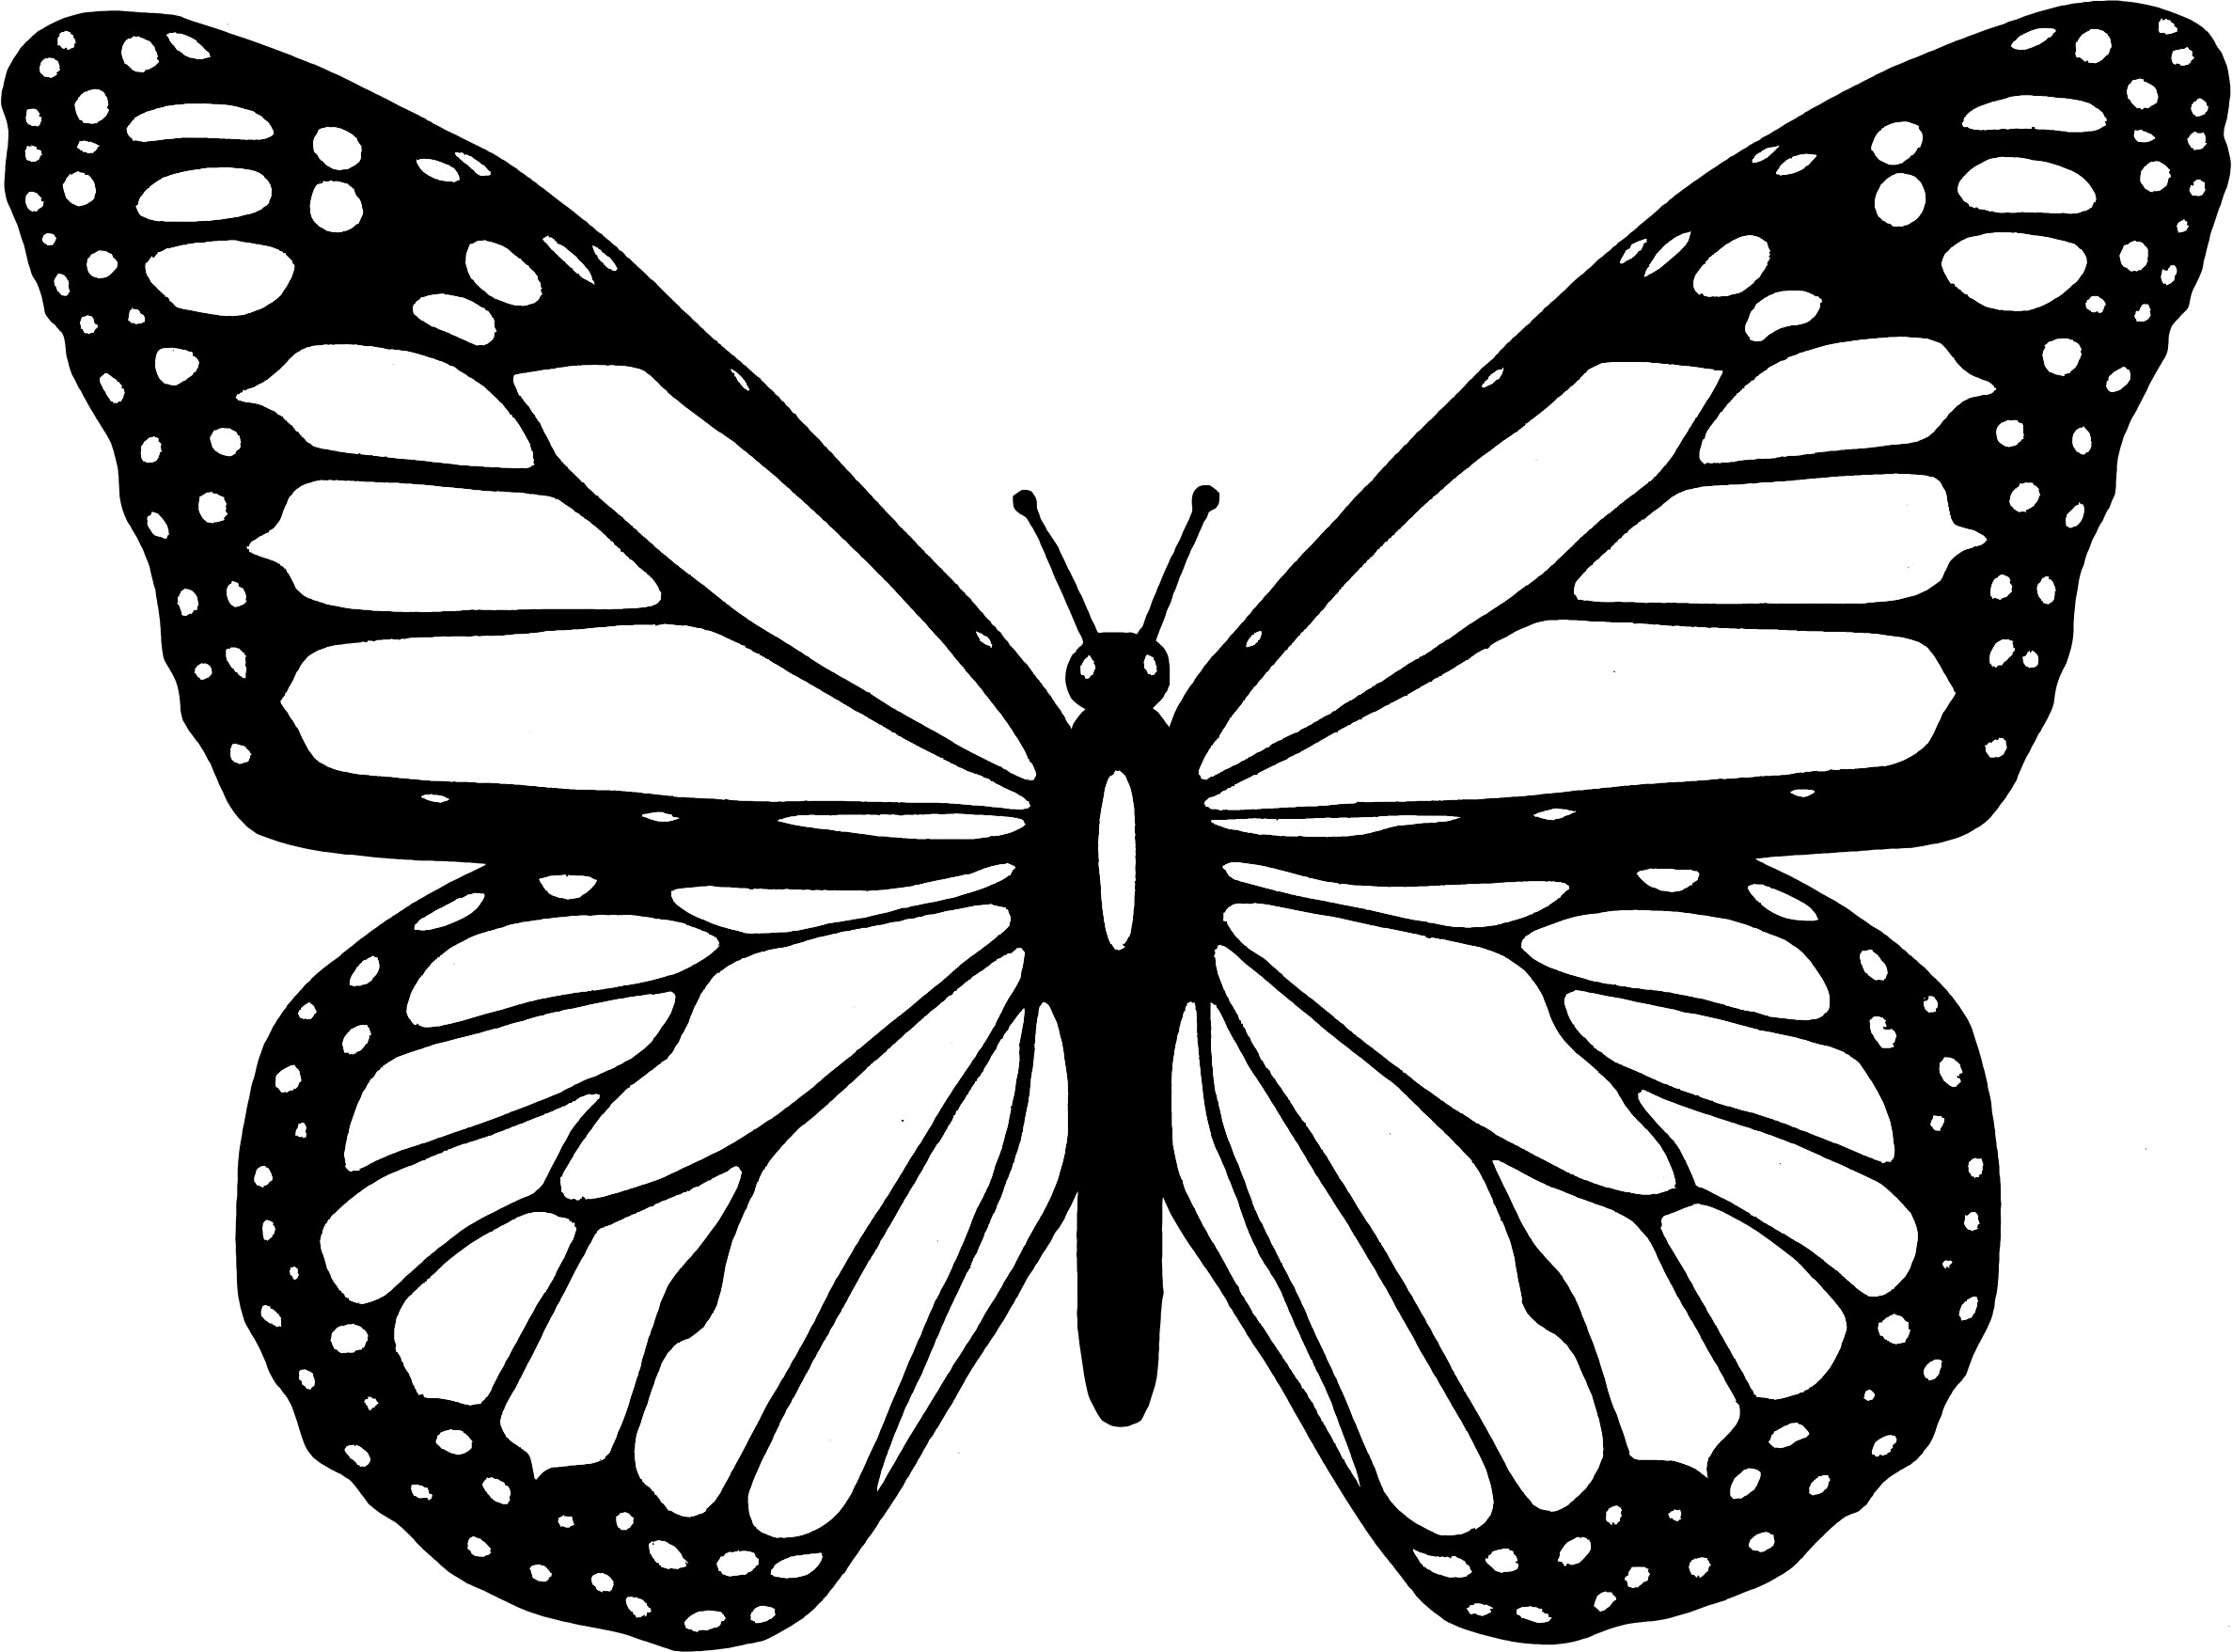 Monarch Butterfly Coloring Pages Free Gallery Free Coloring Sheets - Detailed-butterfly-coloring-pages